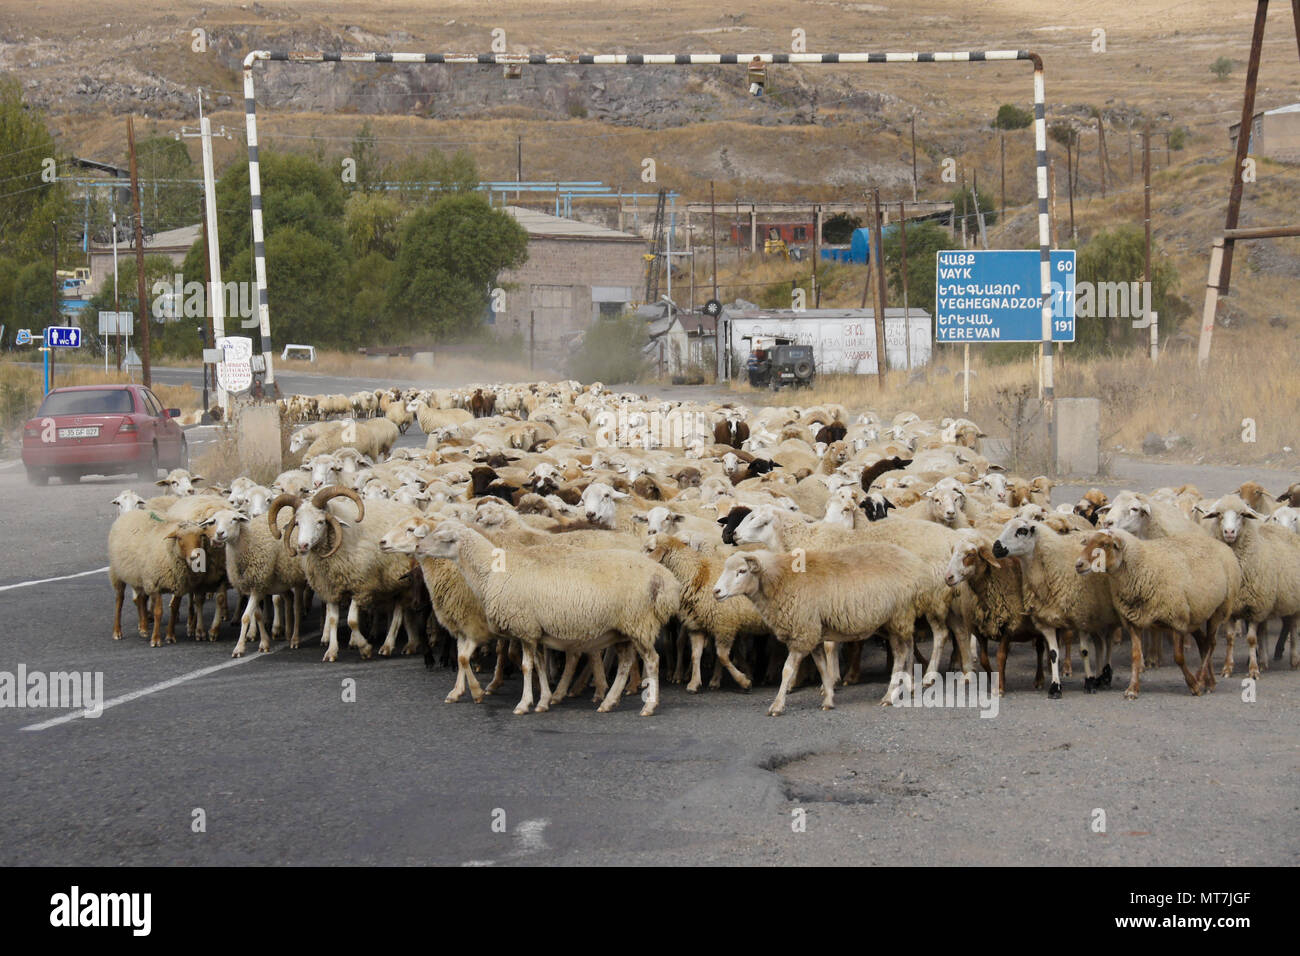 SISIAN, ARMENIA, SEPTEMBER 27, 2017. A flock of sheep walks under a gas pipeline and past a bilingual distance sign on the road through town. - Stock Image